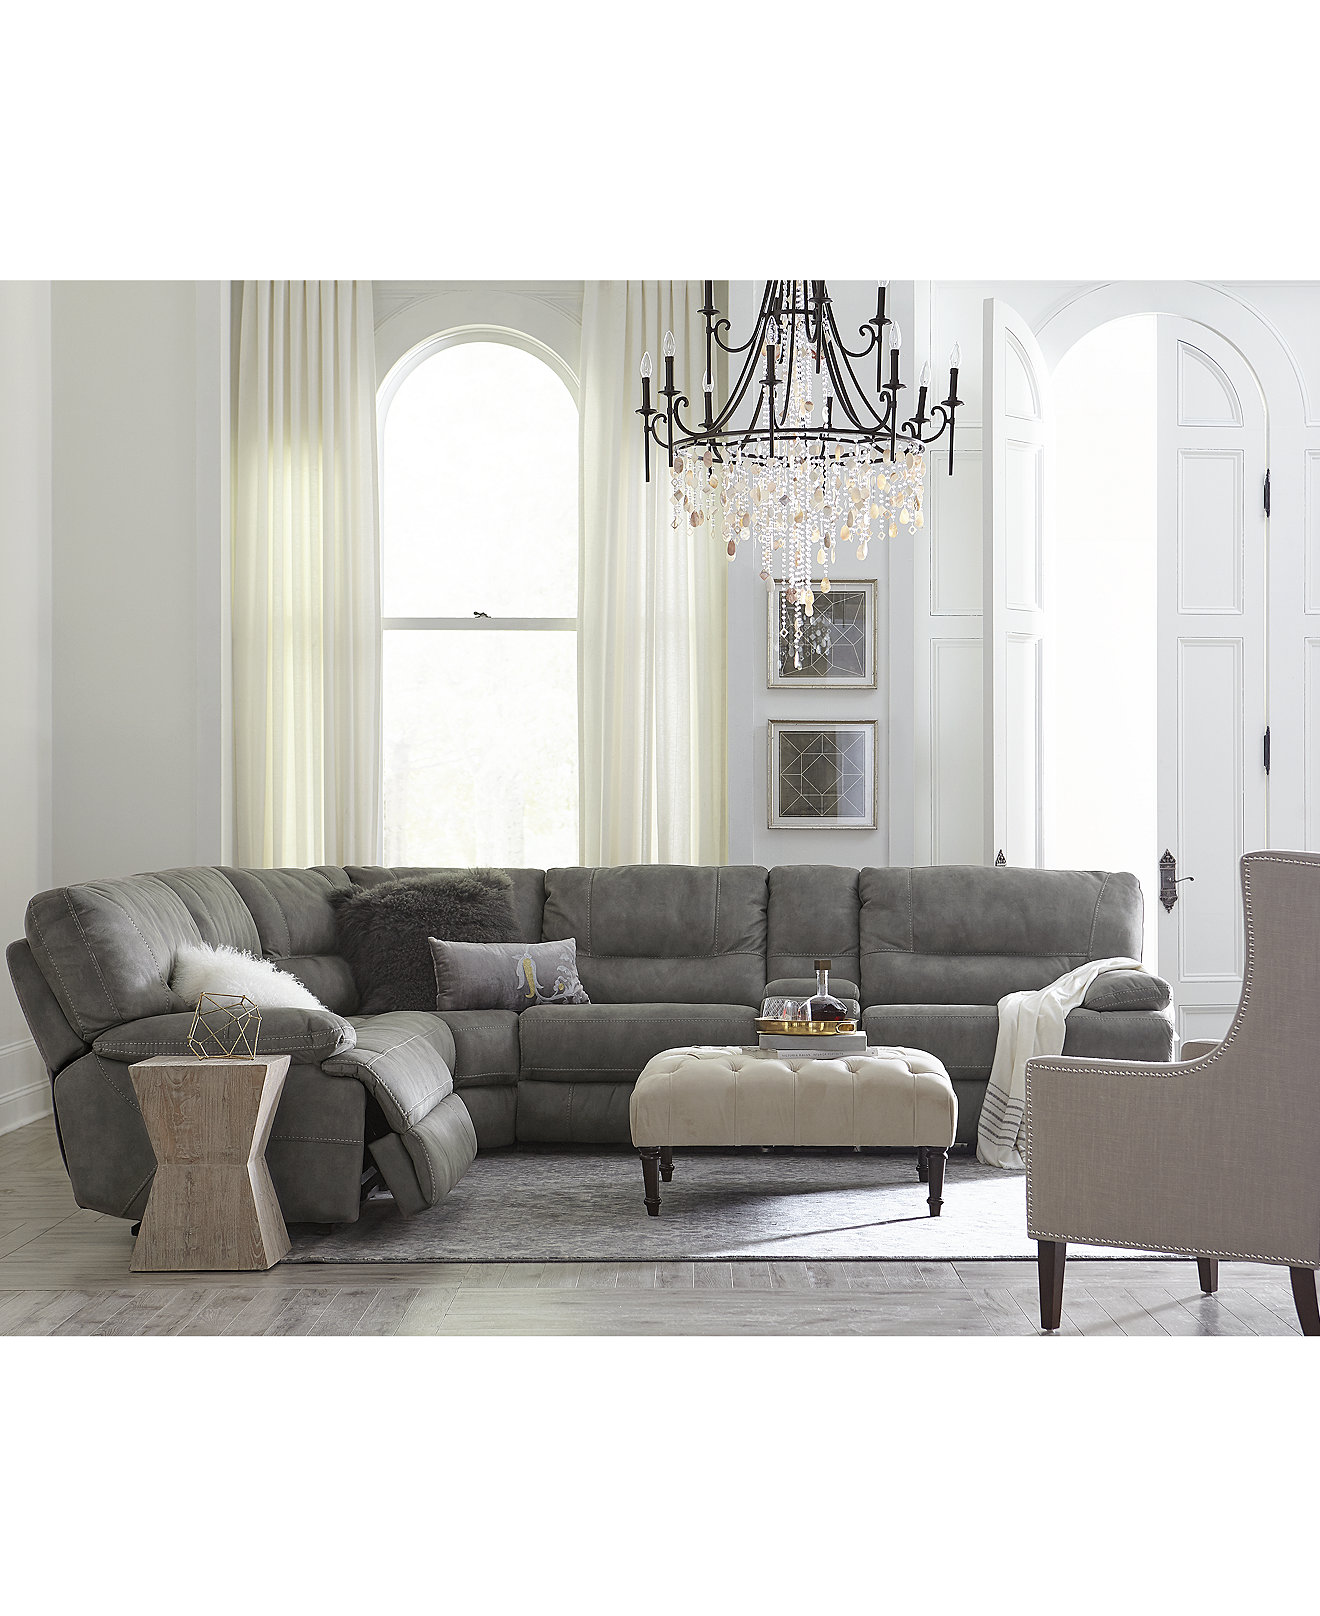 Living Room Furniture Springfield Mo Liam Fabric Power Reclining Sectional Sofa Collection Furniture